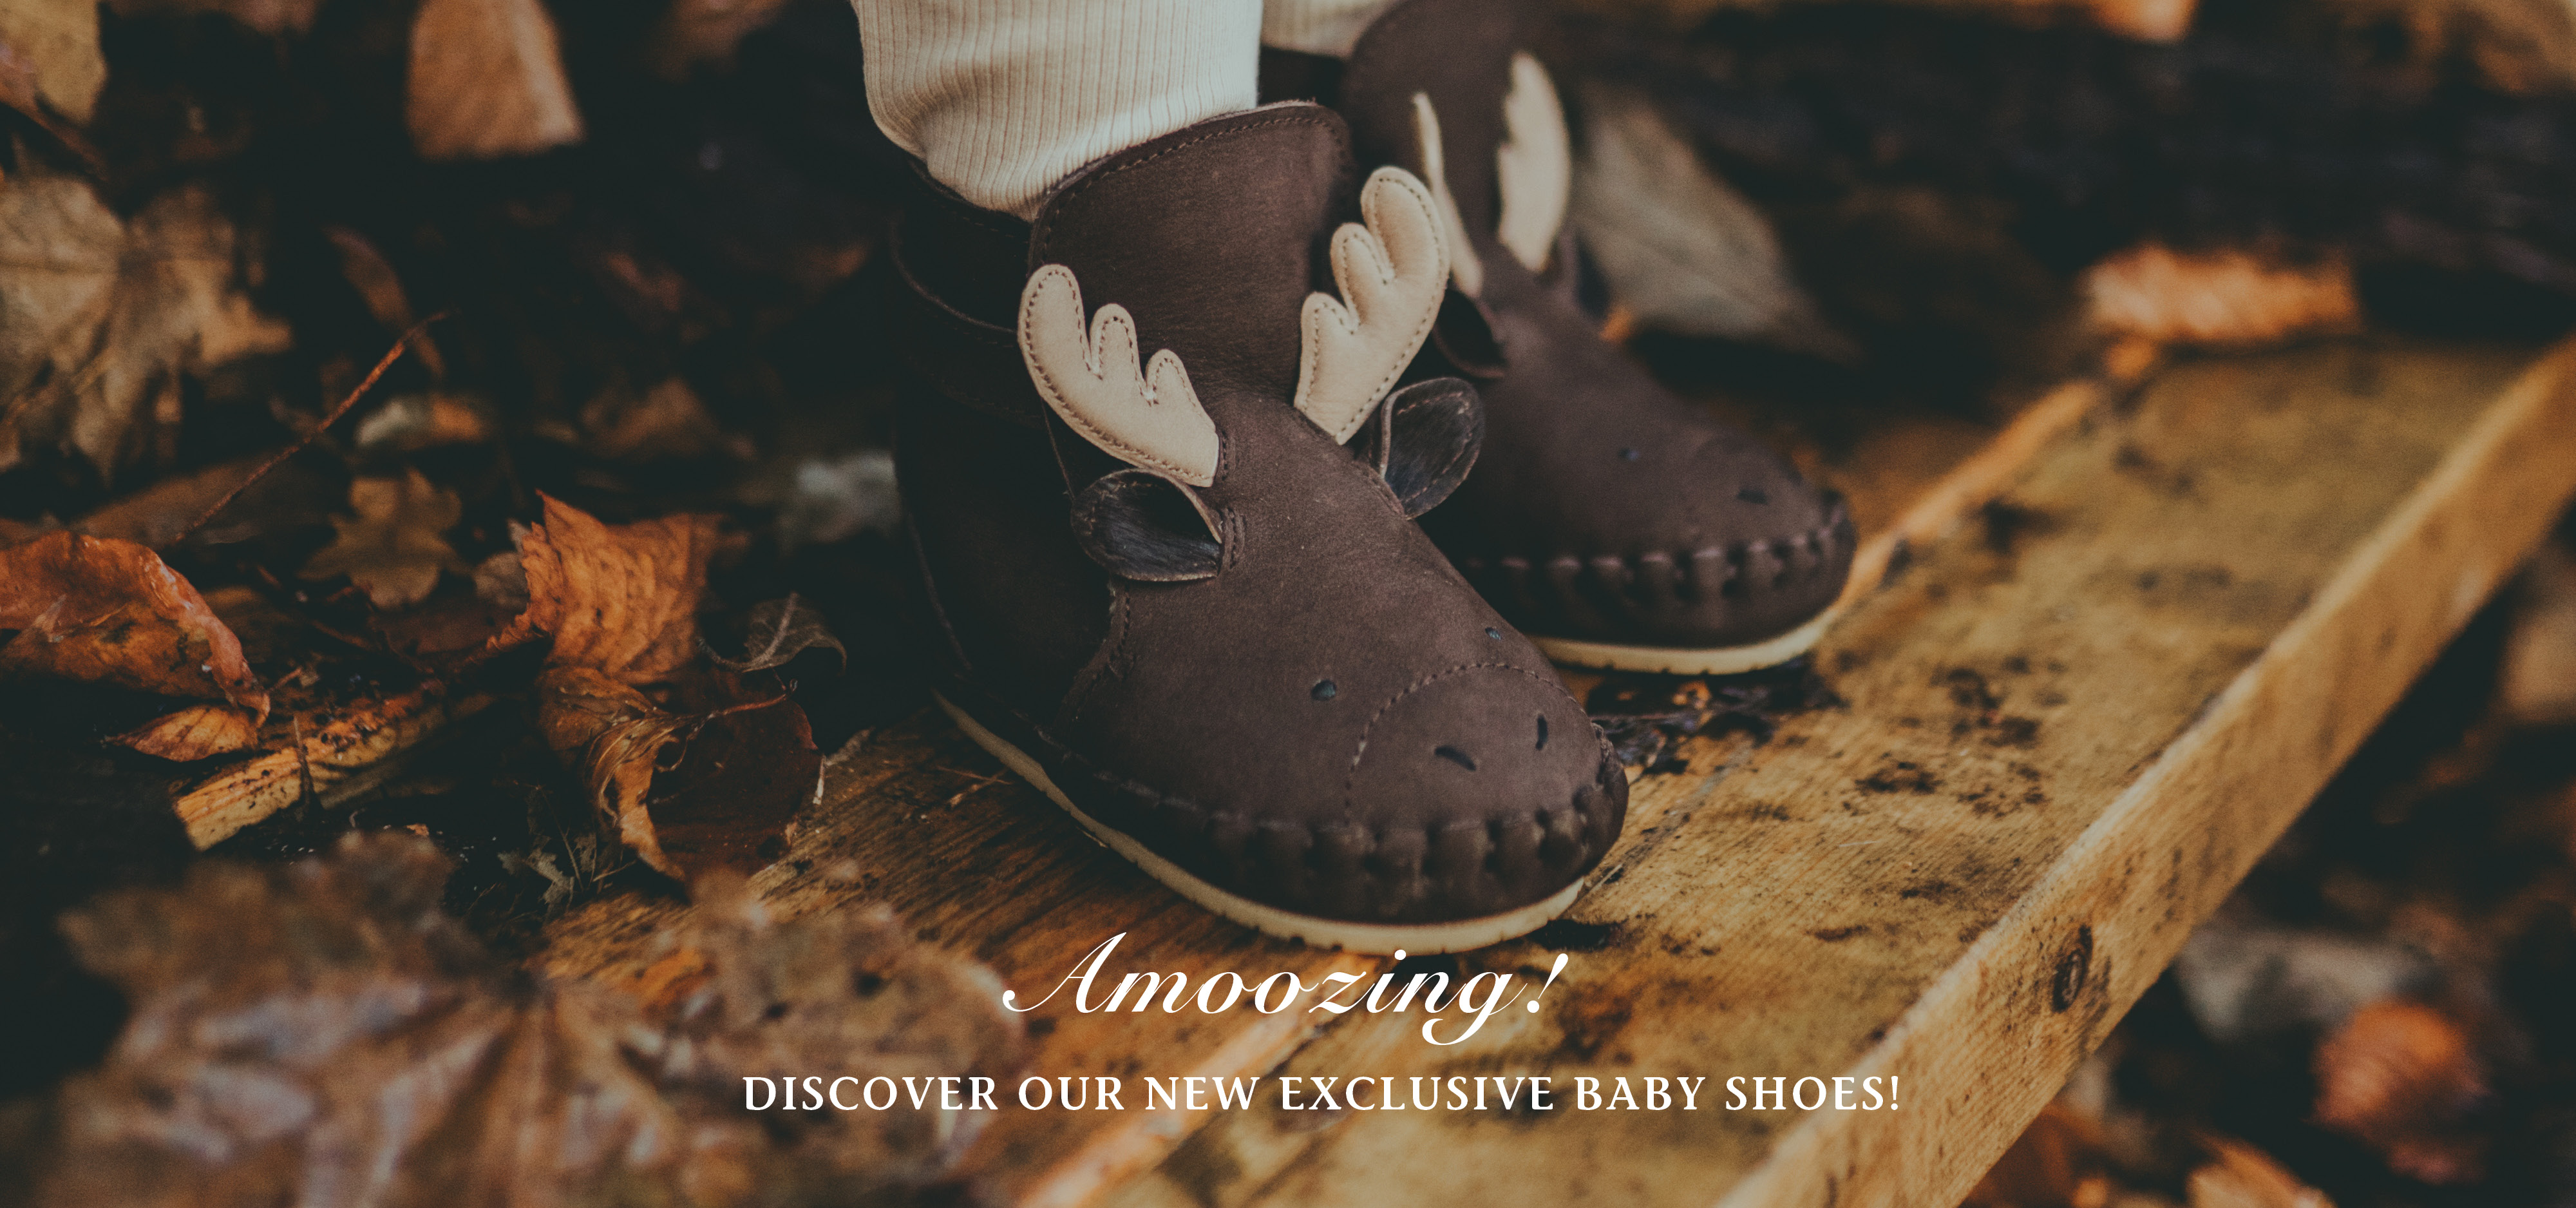 New Exclusive Baby shoes